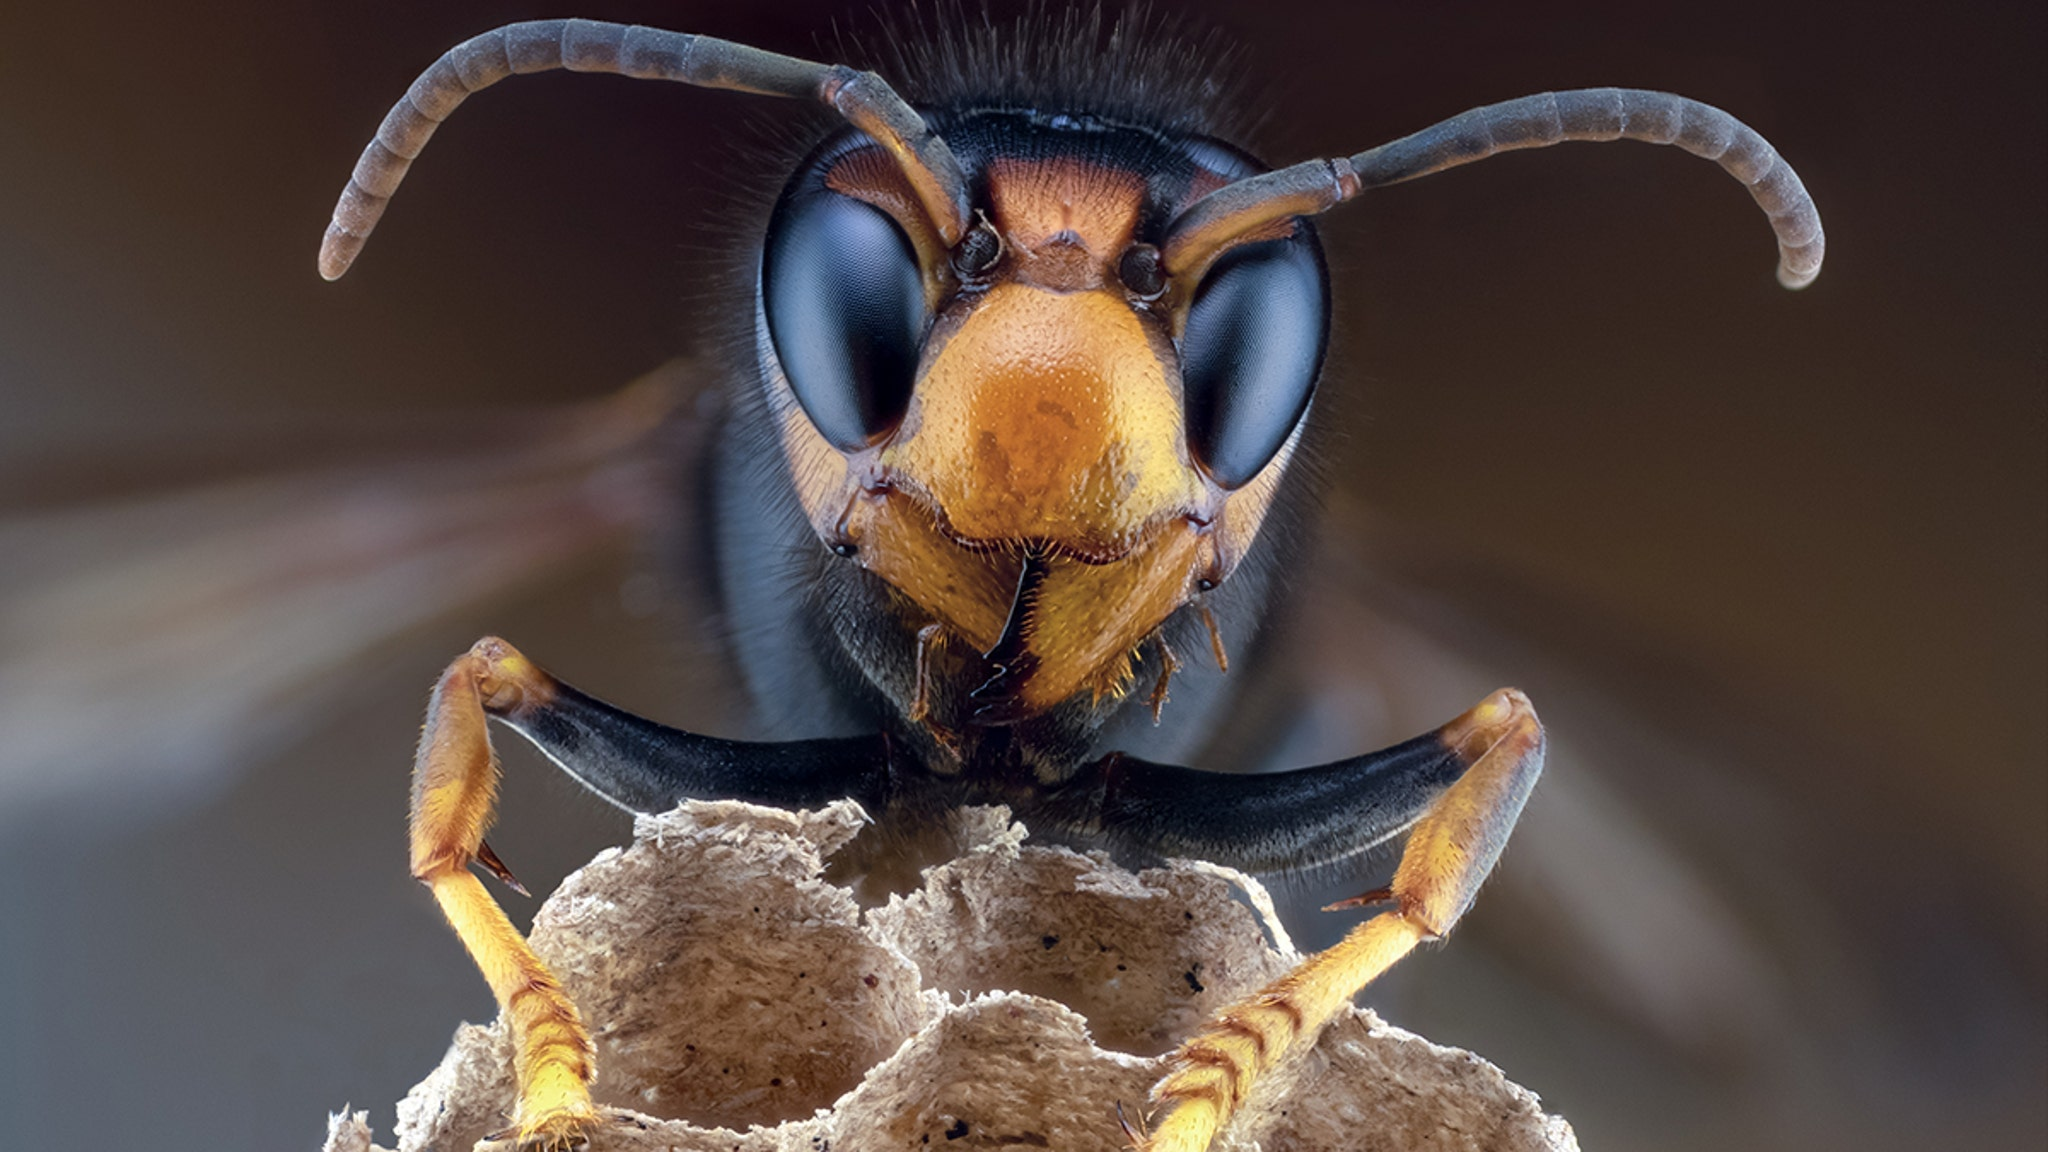 'Murder Hornets' Touch Down in N. America Capable of Killing Humans w/ Venom